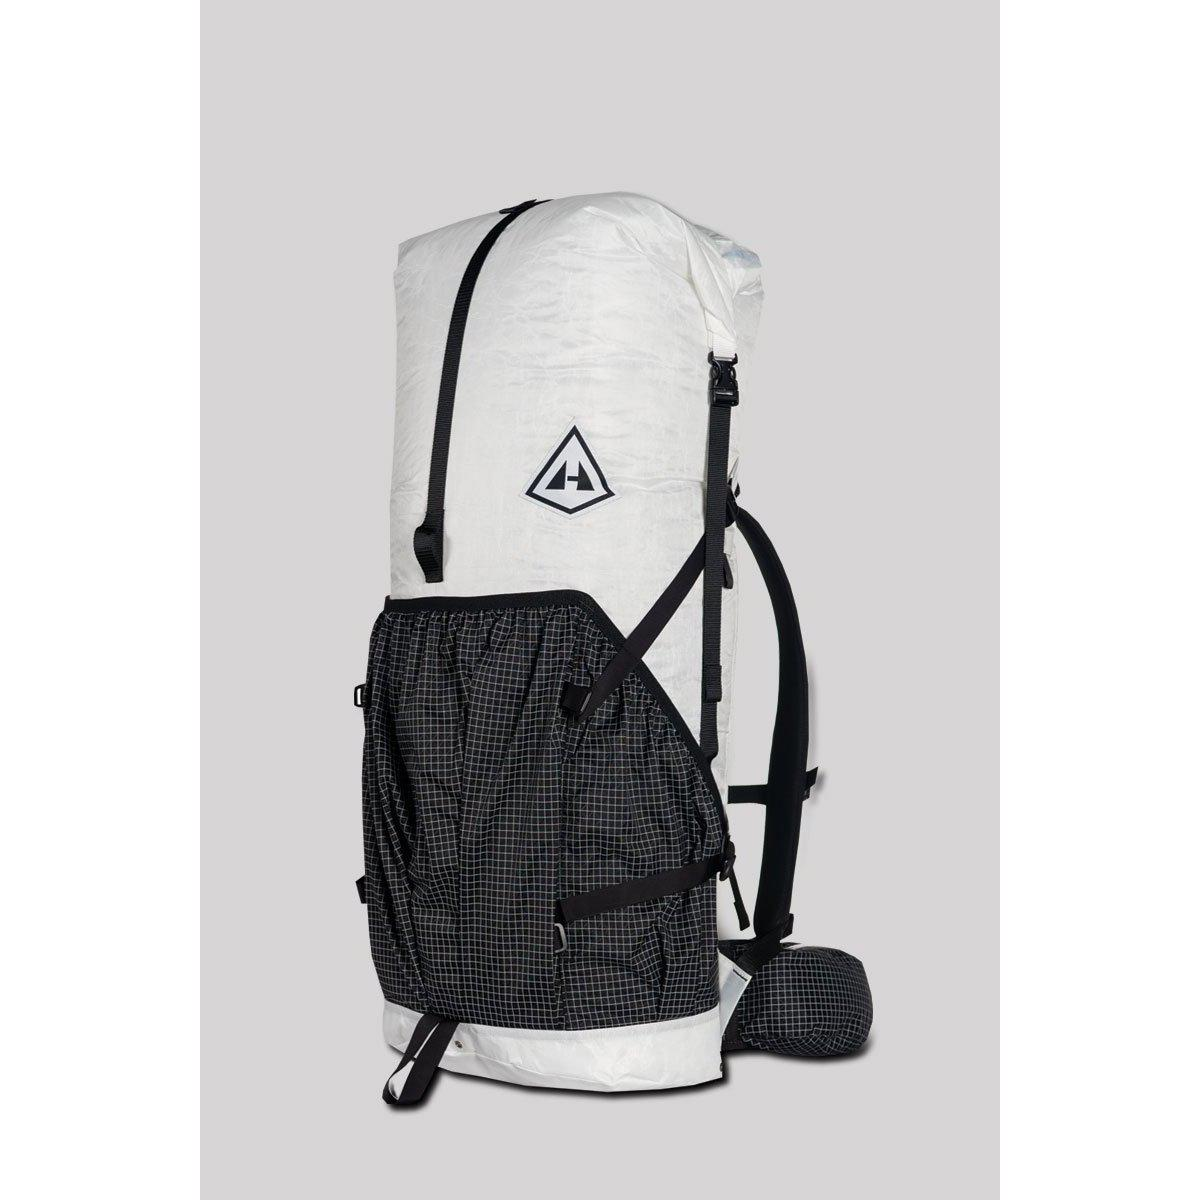 Hyperlite Mountain Gear - 3400 SOUTHWEST Ultralite Backpack